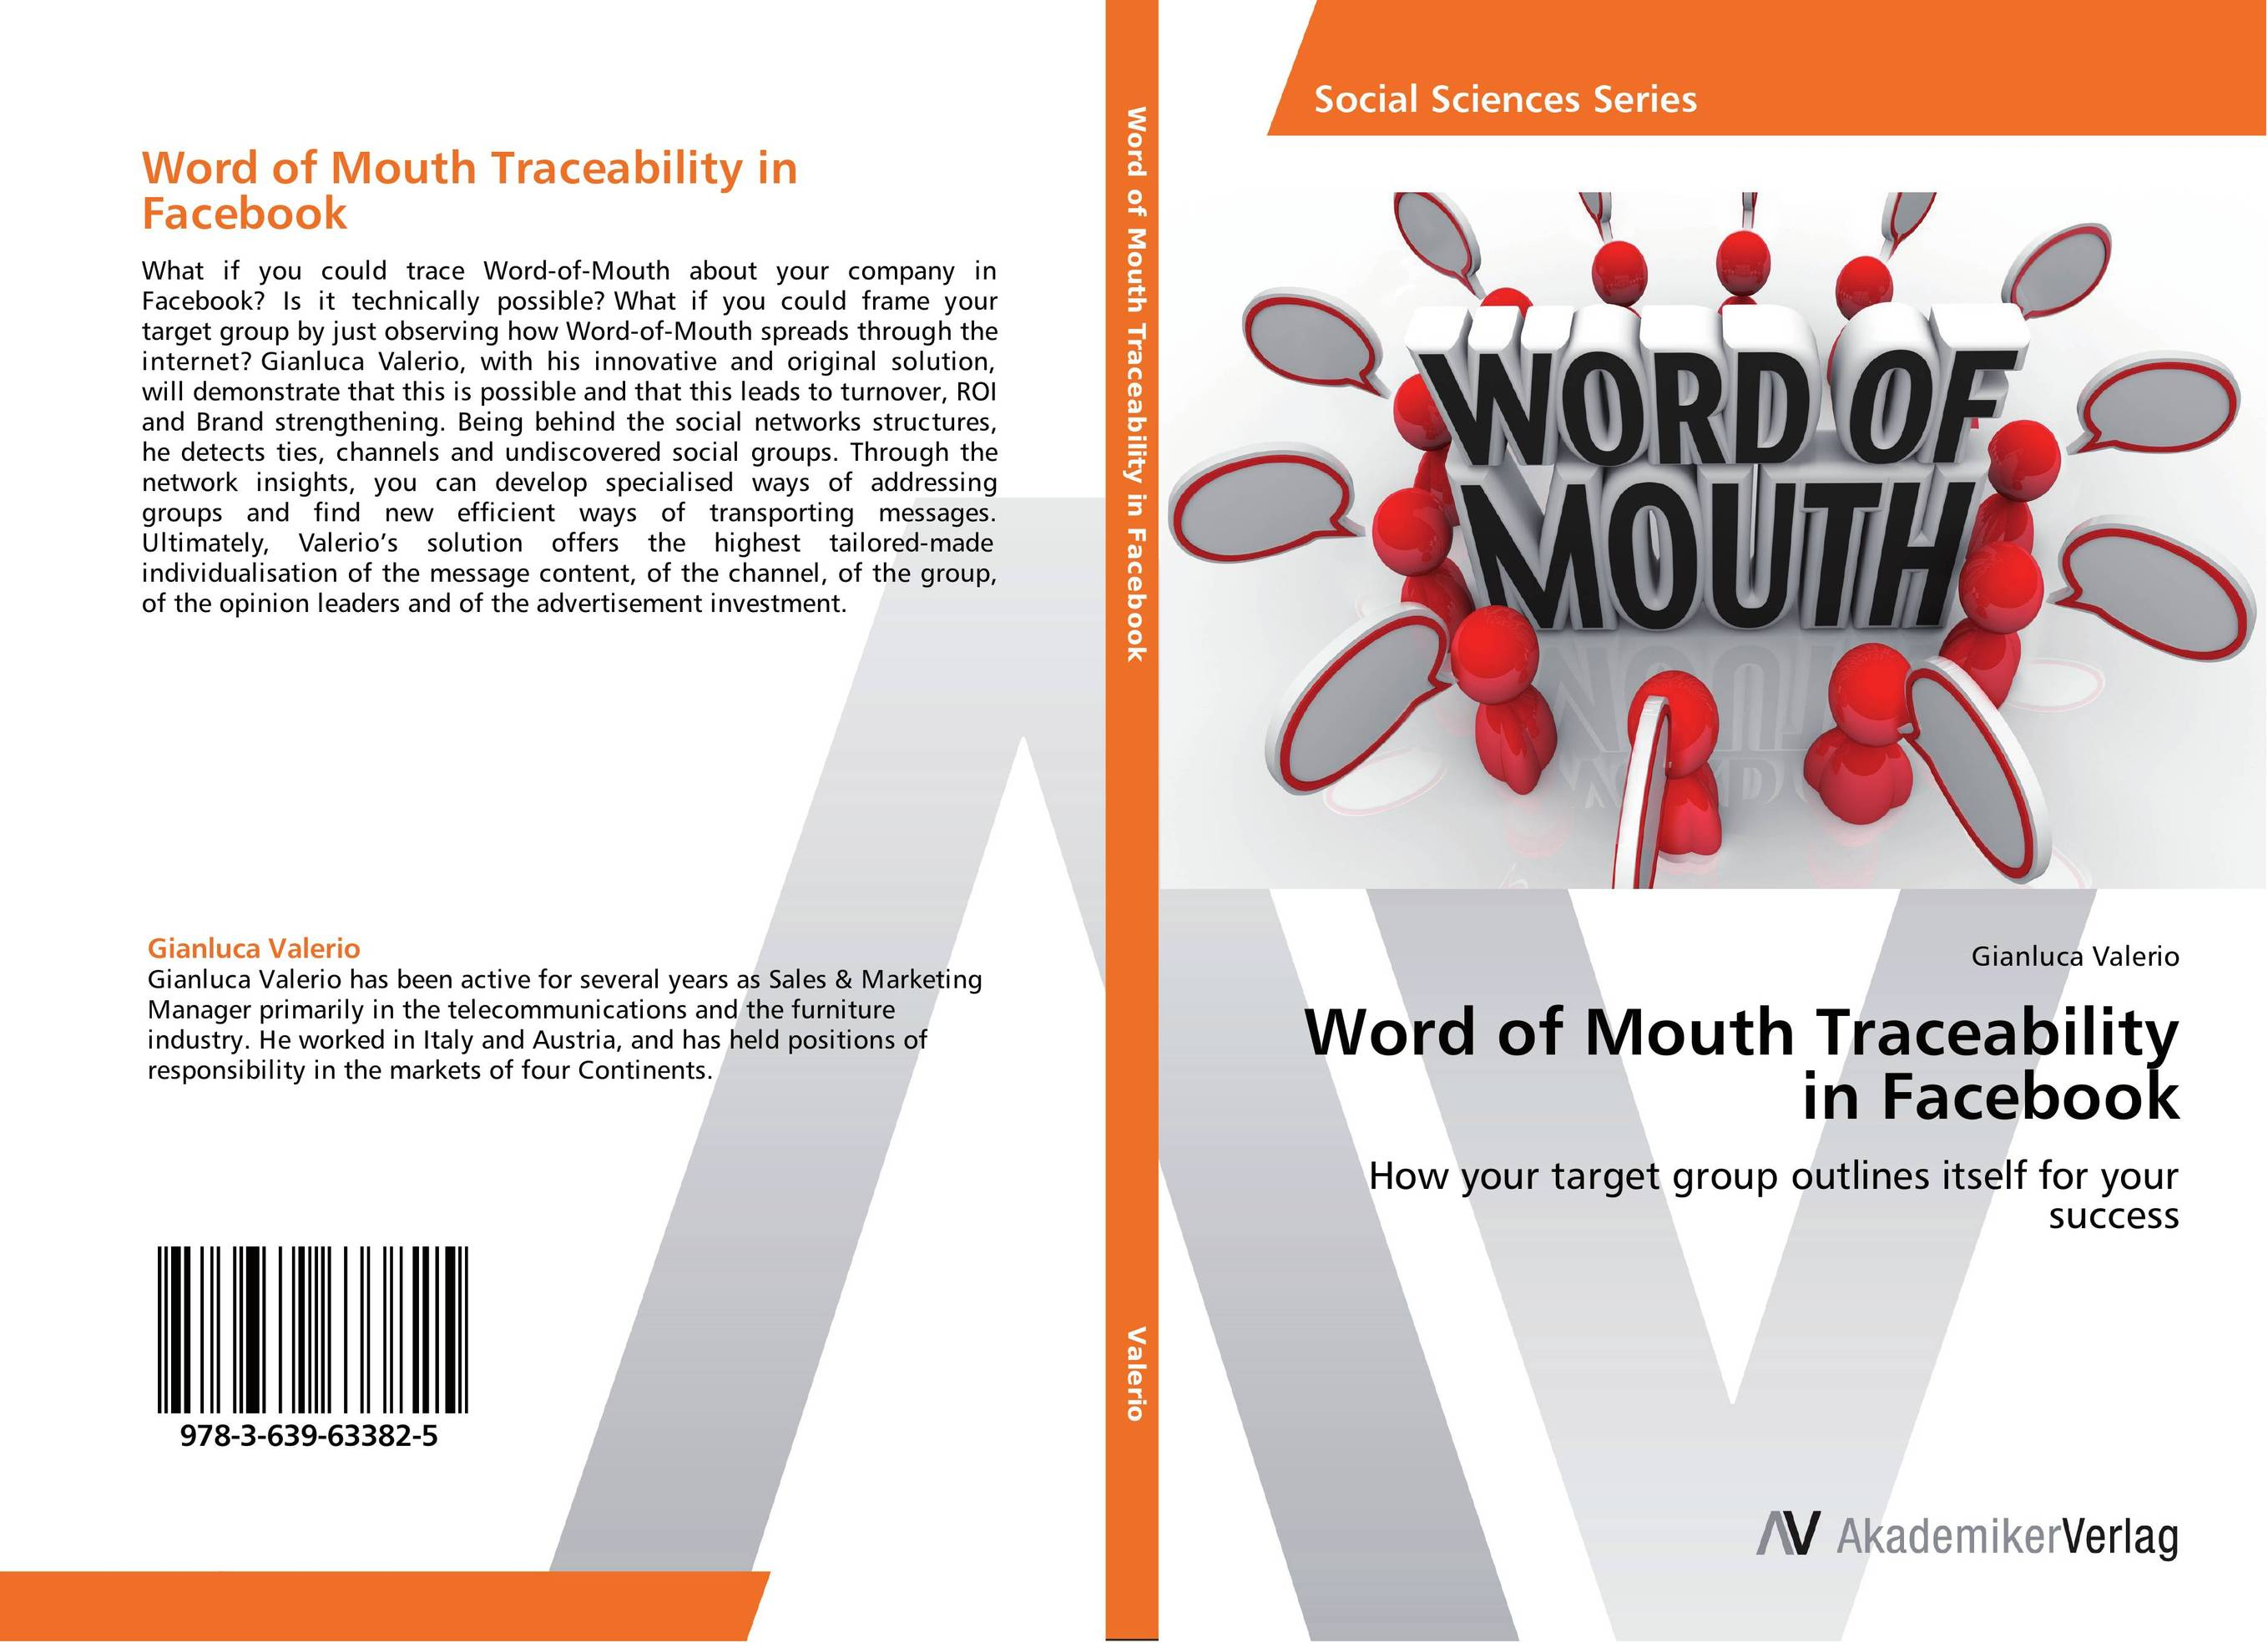 Word of Mouth Traceability in Facebook lennon j skywriting by word of mouth